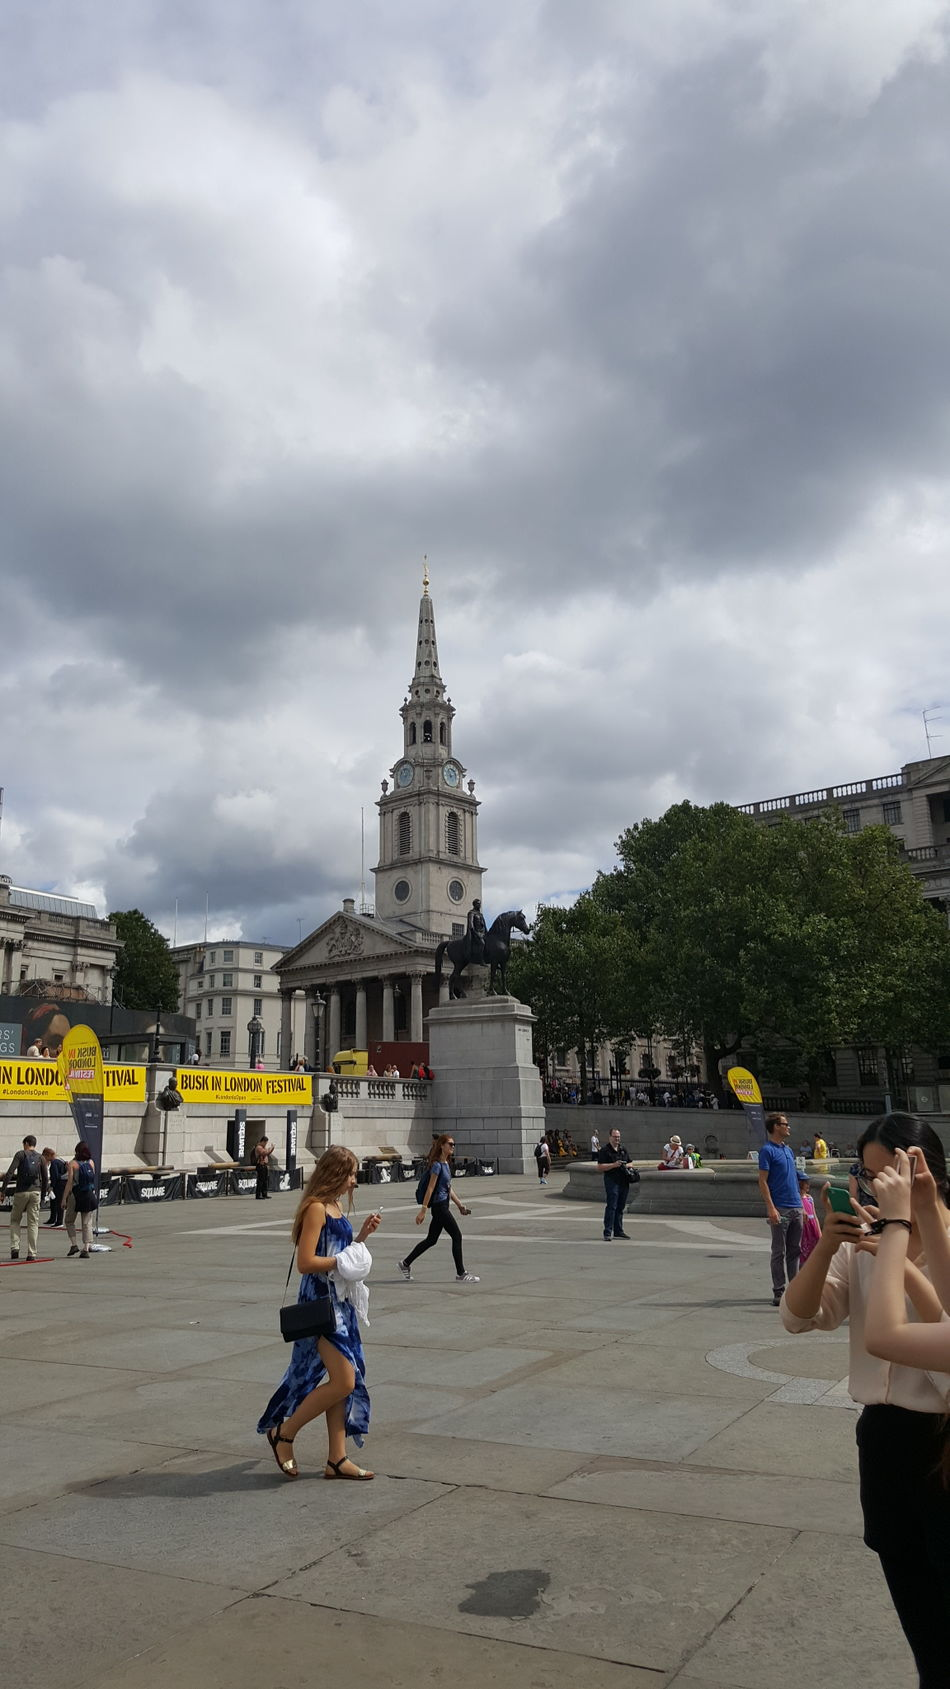 Adult Architecture Built Structure City City Break Cloud - Sky Day Full Length Men One Man Only One Person Only Men Outdoors People Sky Tourism Trafalgar Square Travel Destinations Vacations Young Adult